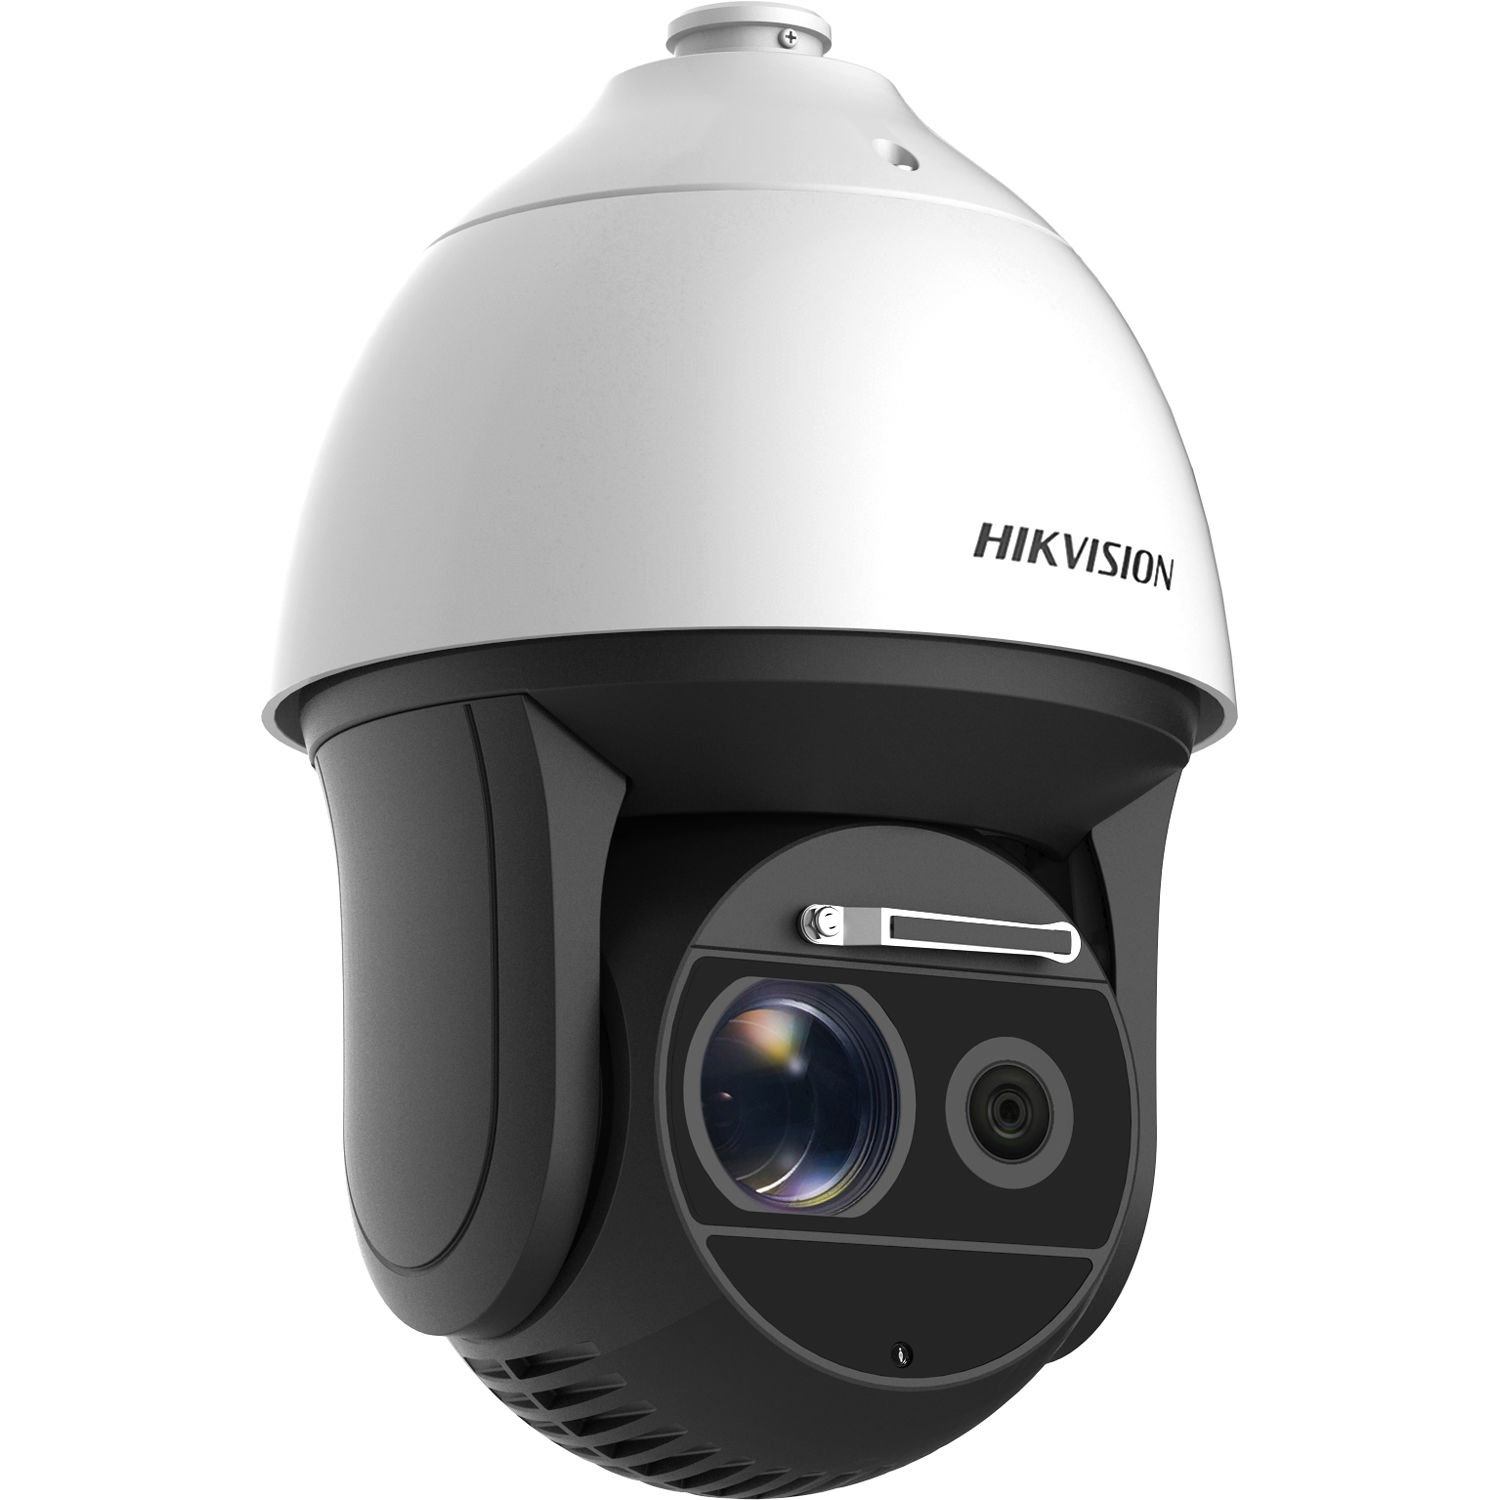 c6441047122 Hikvision 2MP Outdoor Network PTZ Dome Camera with 6.6-330mm Lens